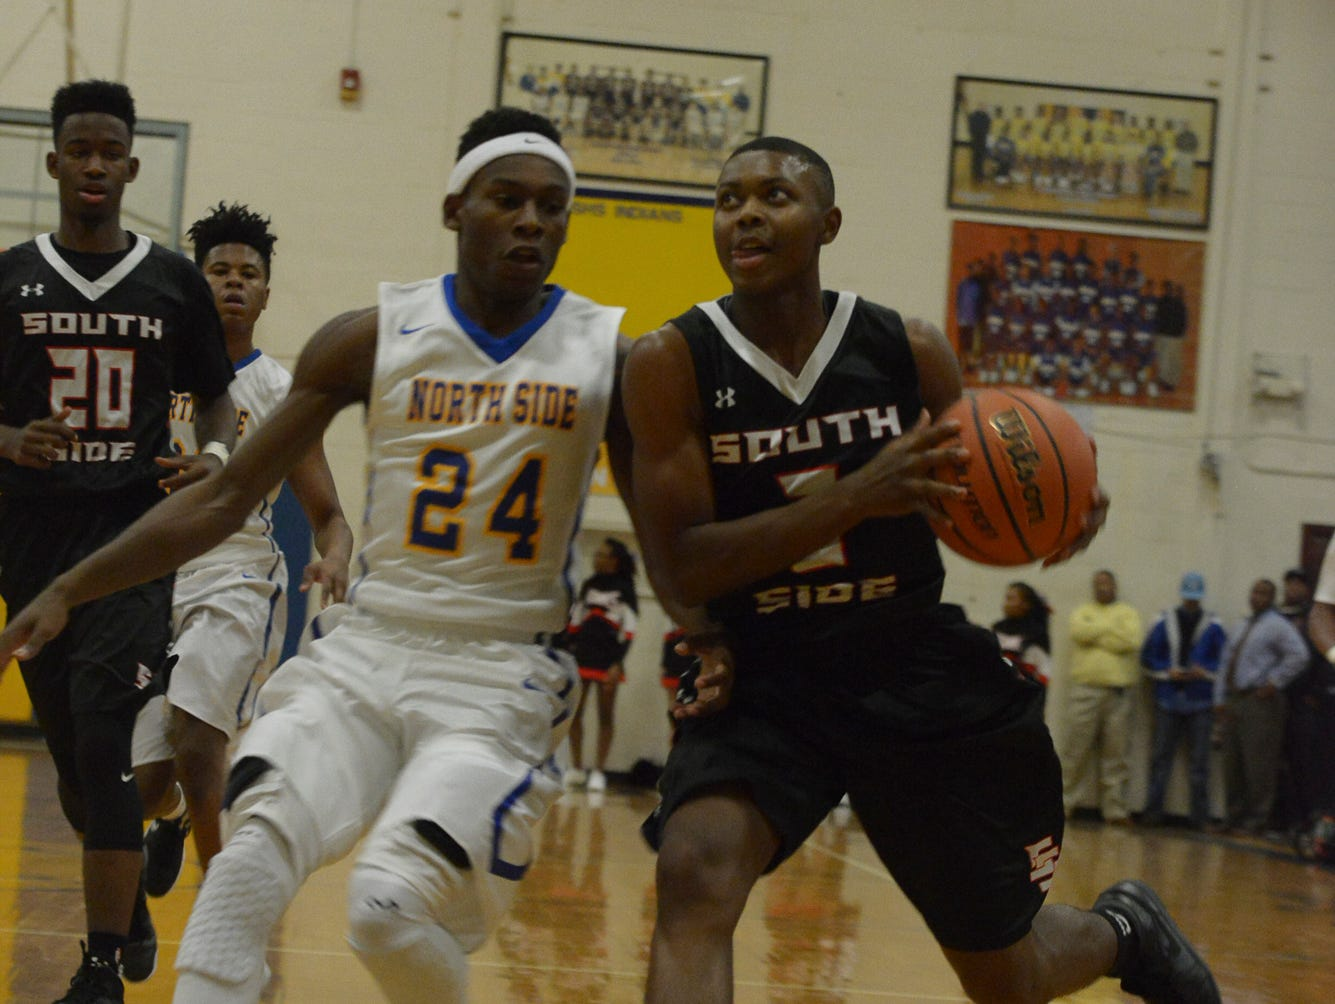 The Indians of North Side High School hosted the Hawks of South Side High School, Tuesday, November 24, 2015 at North Side. The Hawks defeated the Indians, 87-52.